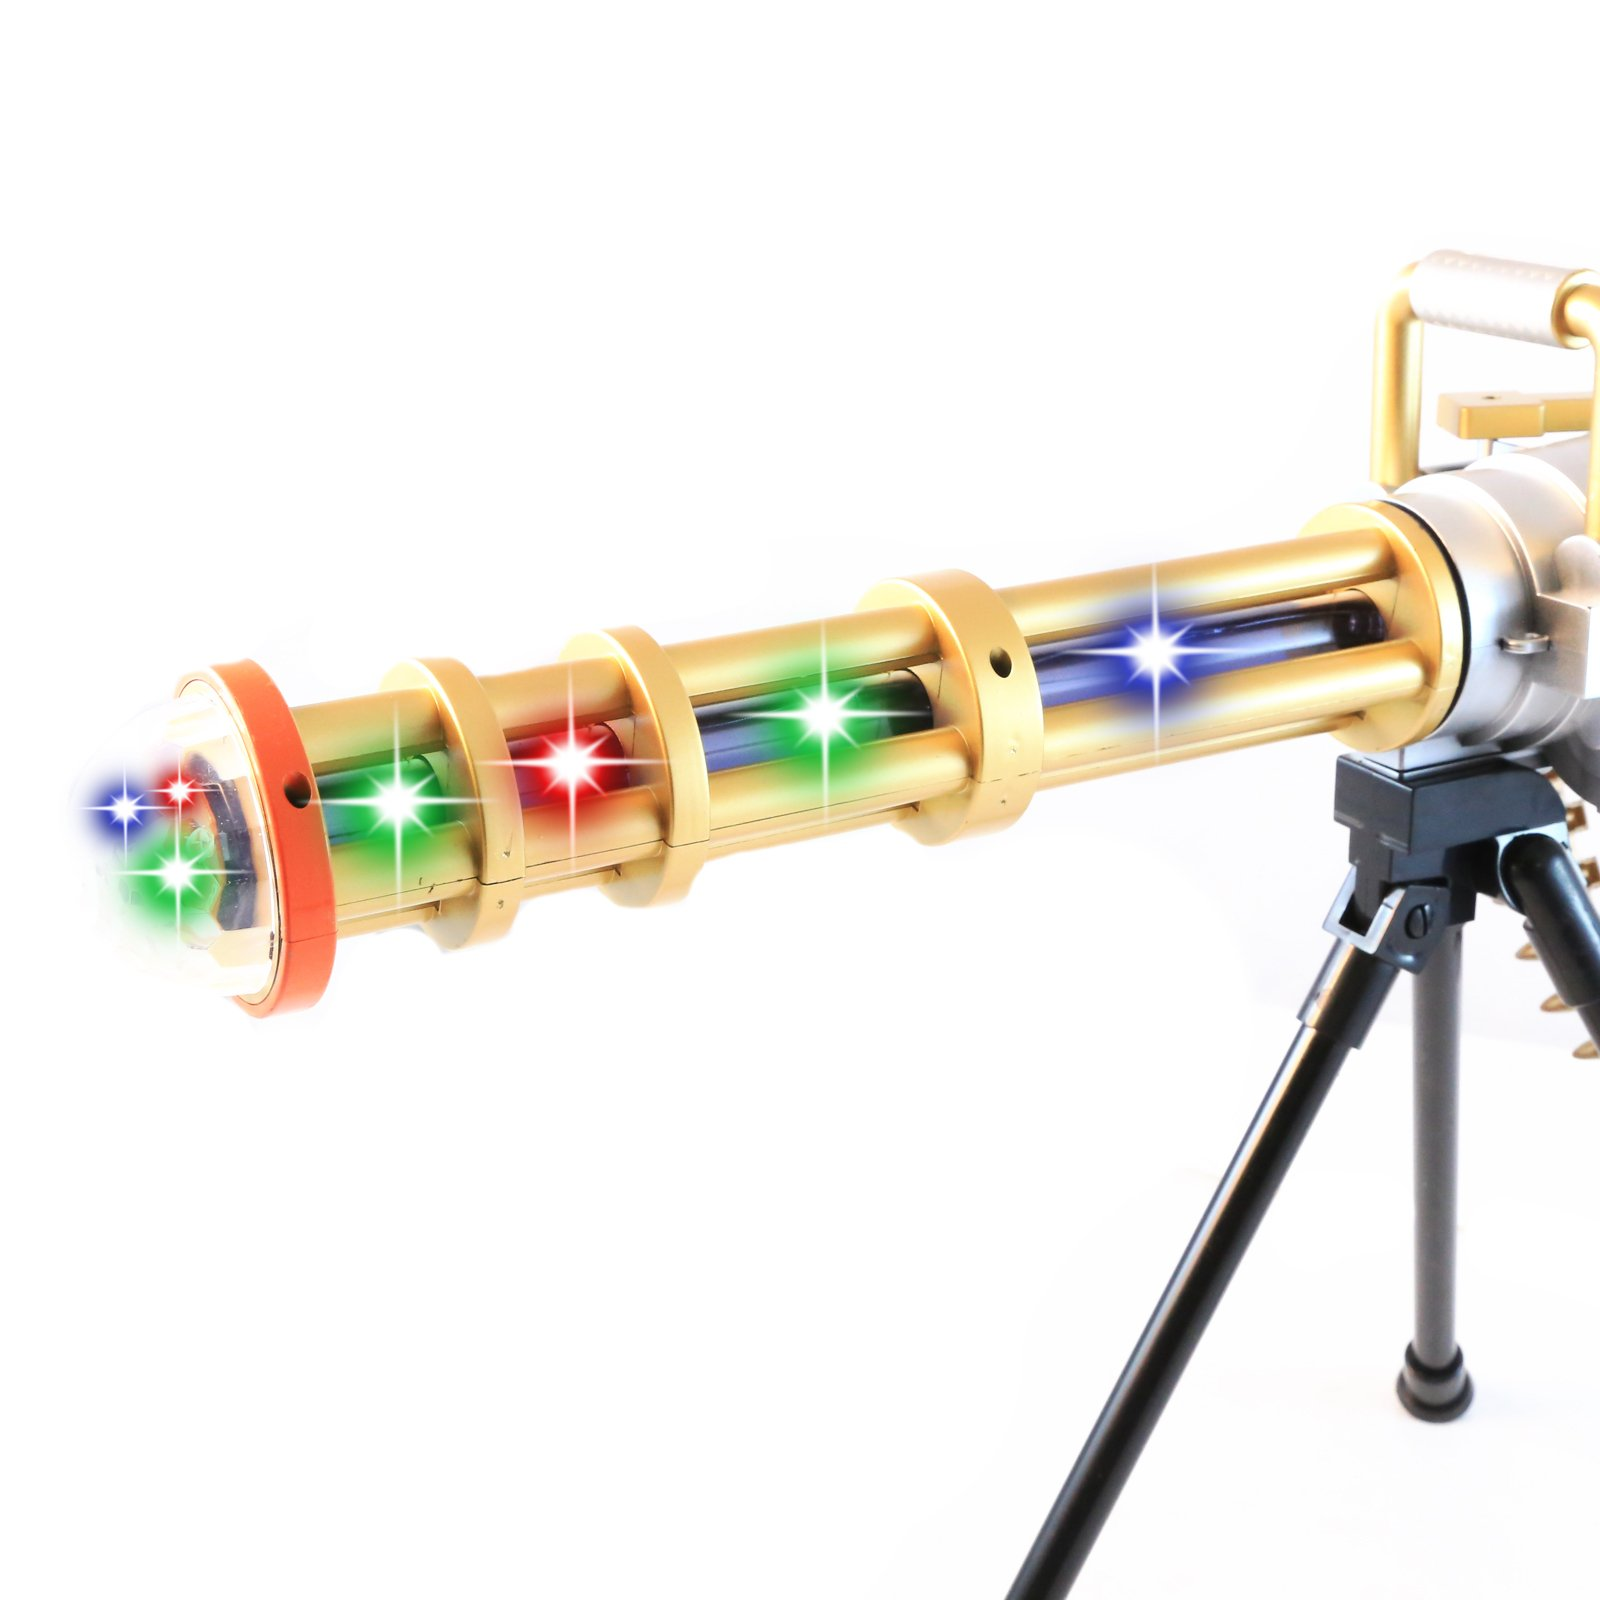 Musical Gatling Gun Toy Flashing Lights Pretend Play Gifts for Boys Black Friday Cyber Monday